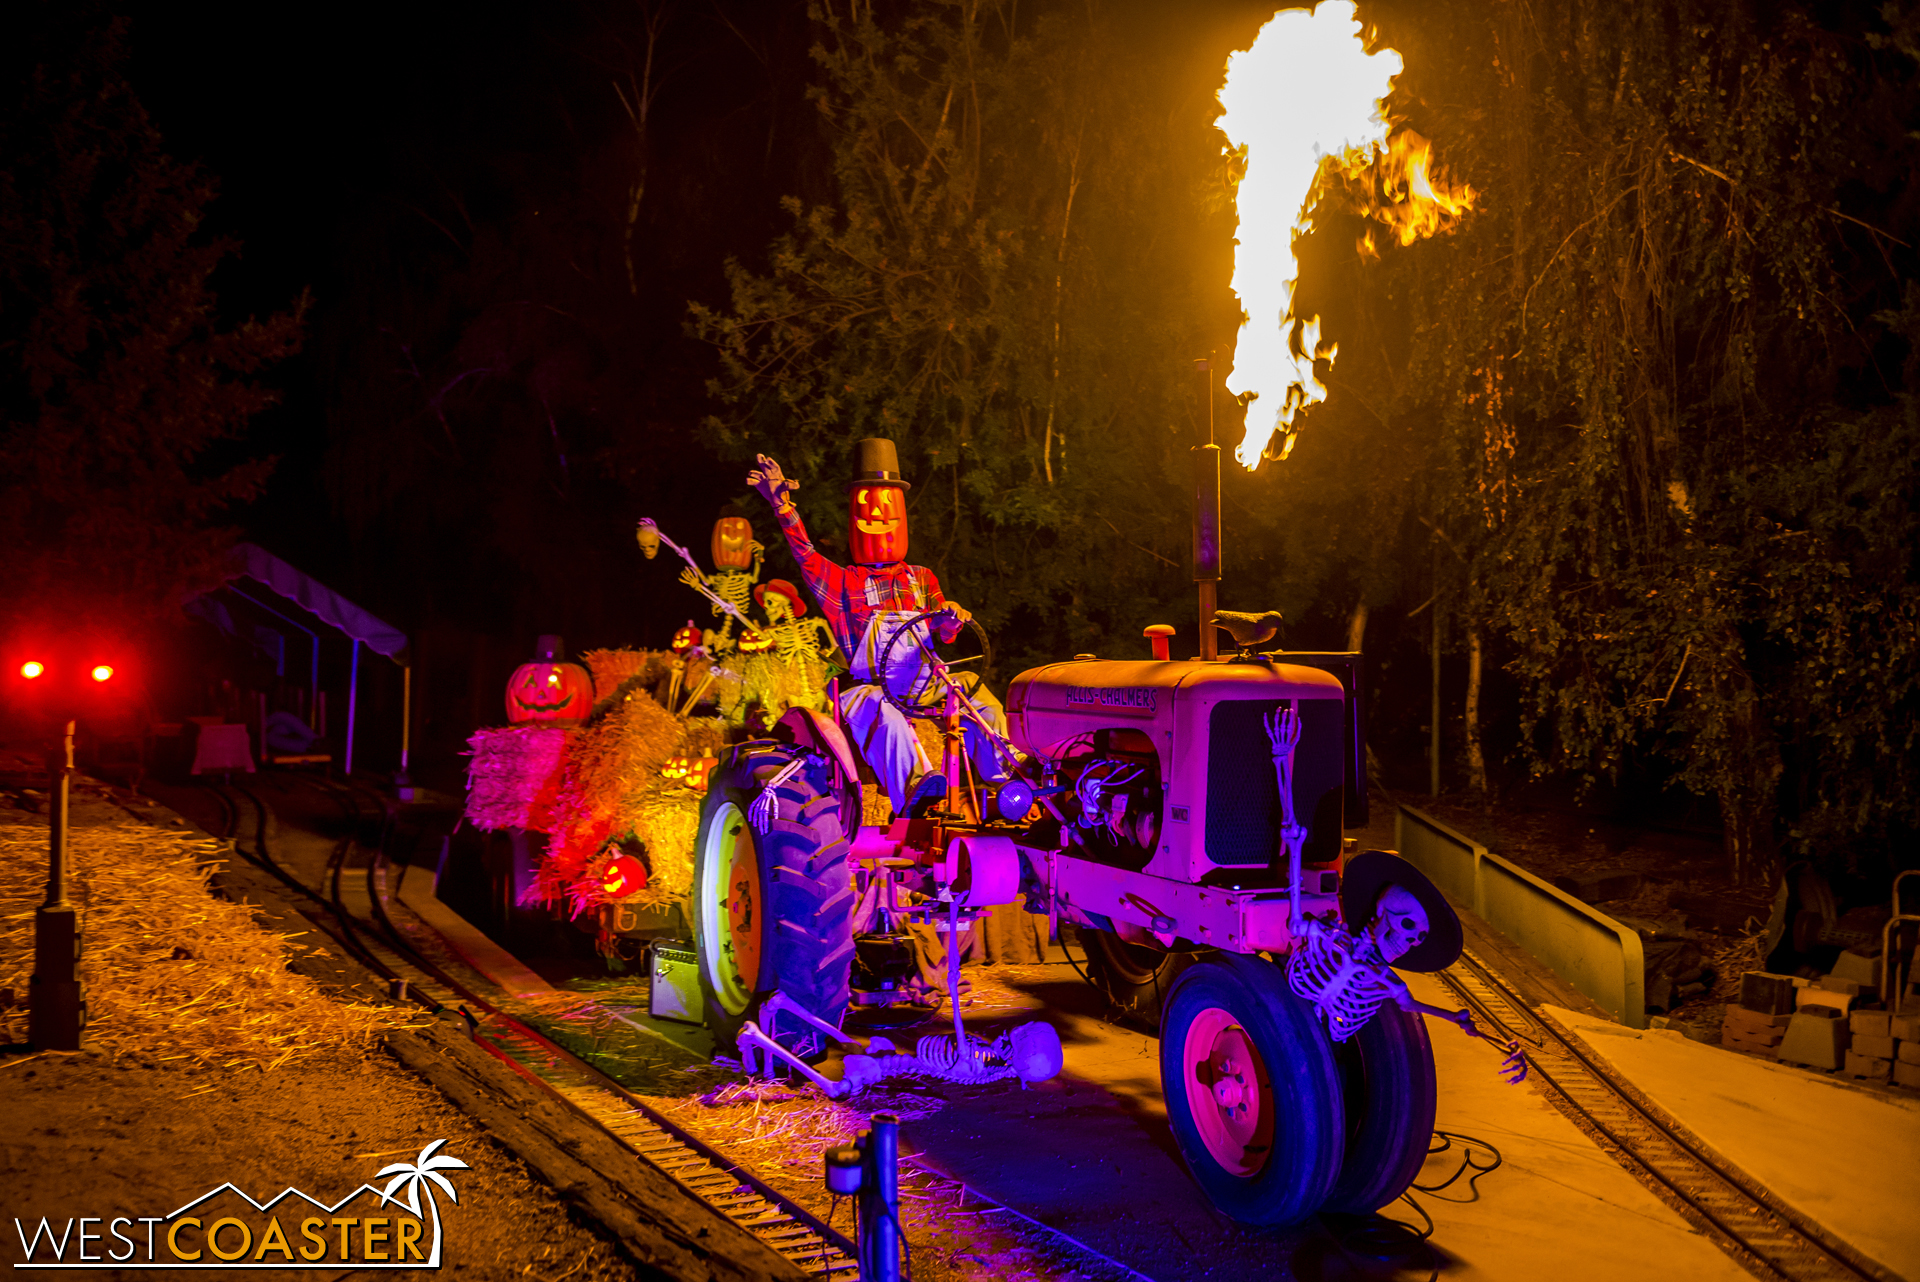 The flamethrower of this tractor is rigged to go off when a train passes by.